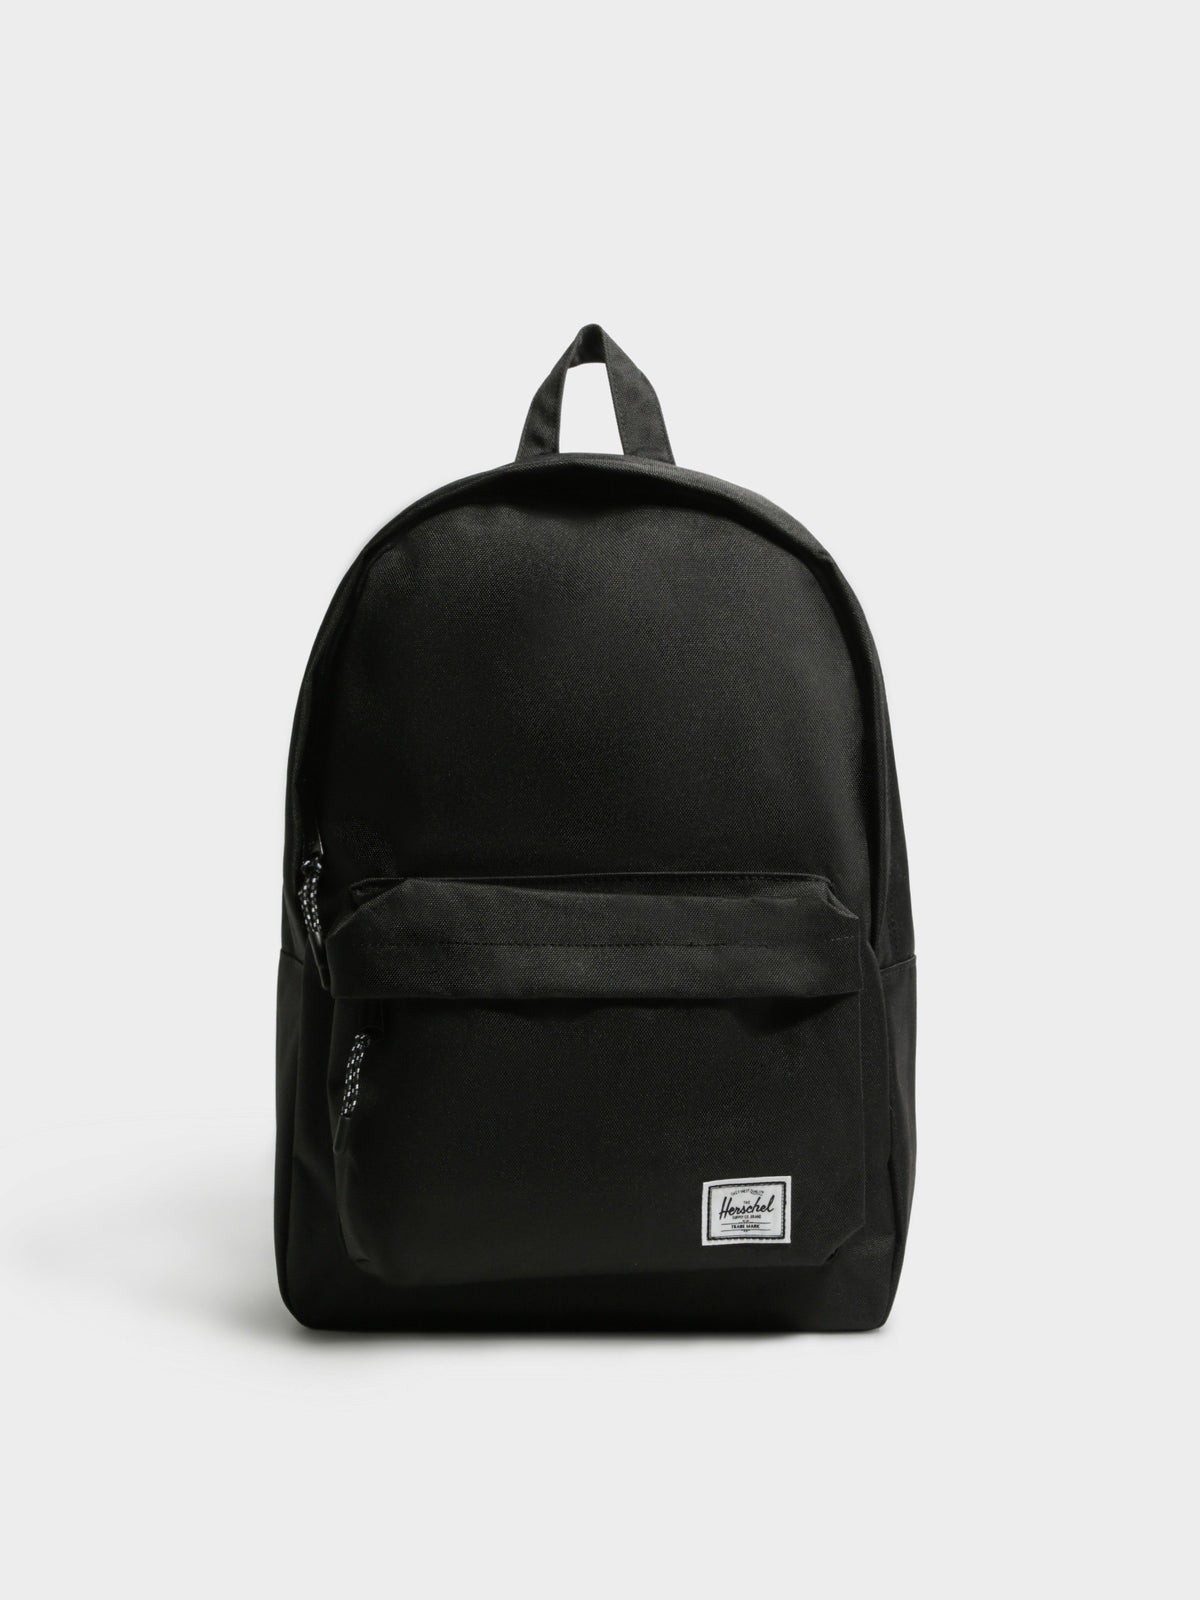 24L Classic Backpack in Black